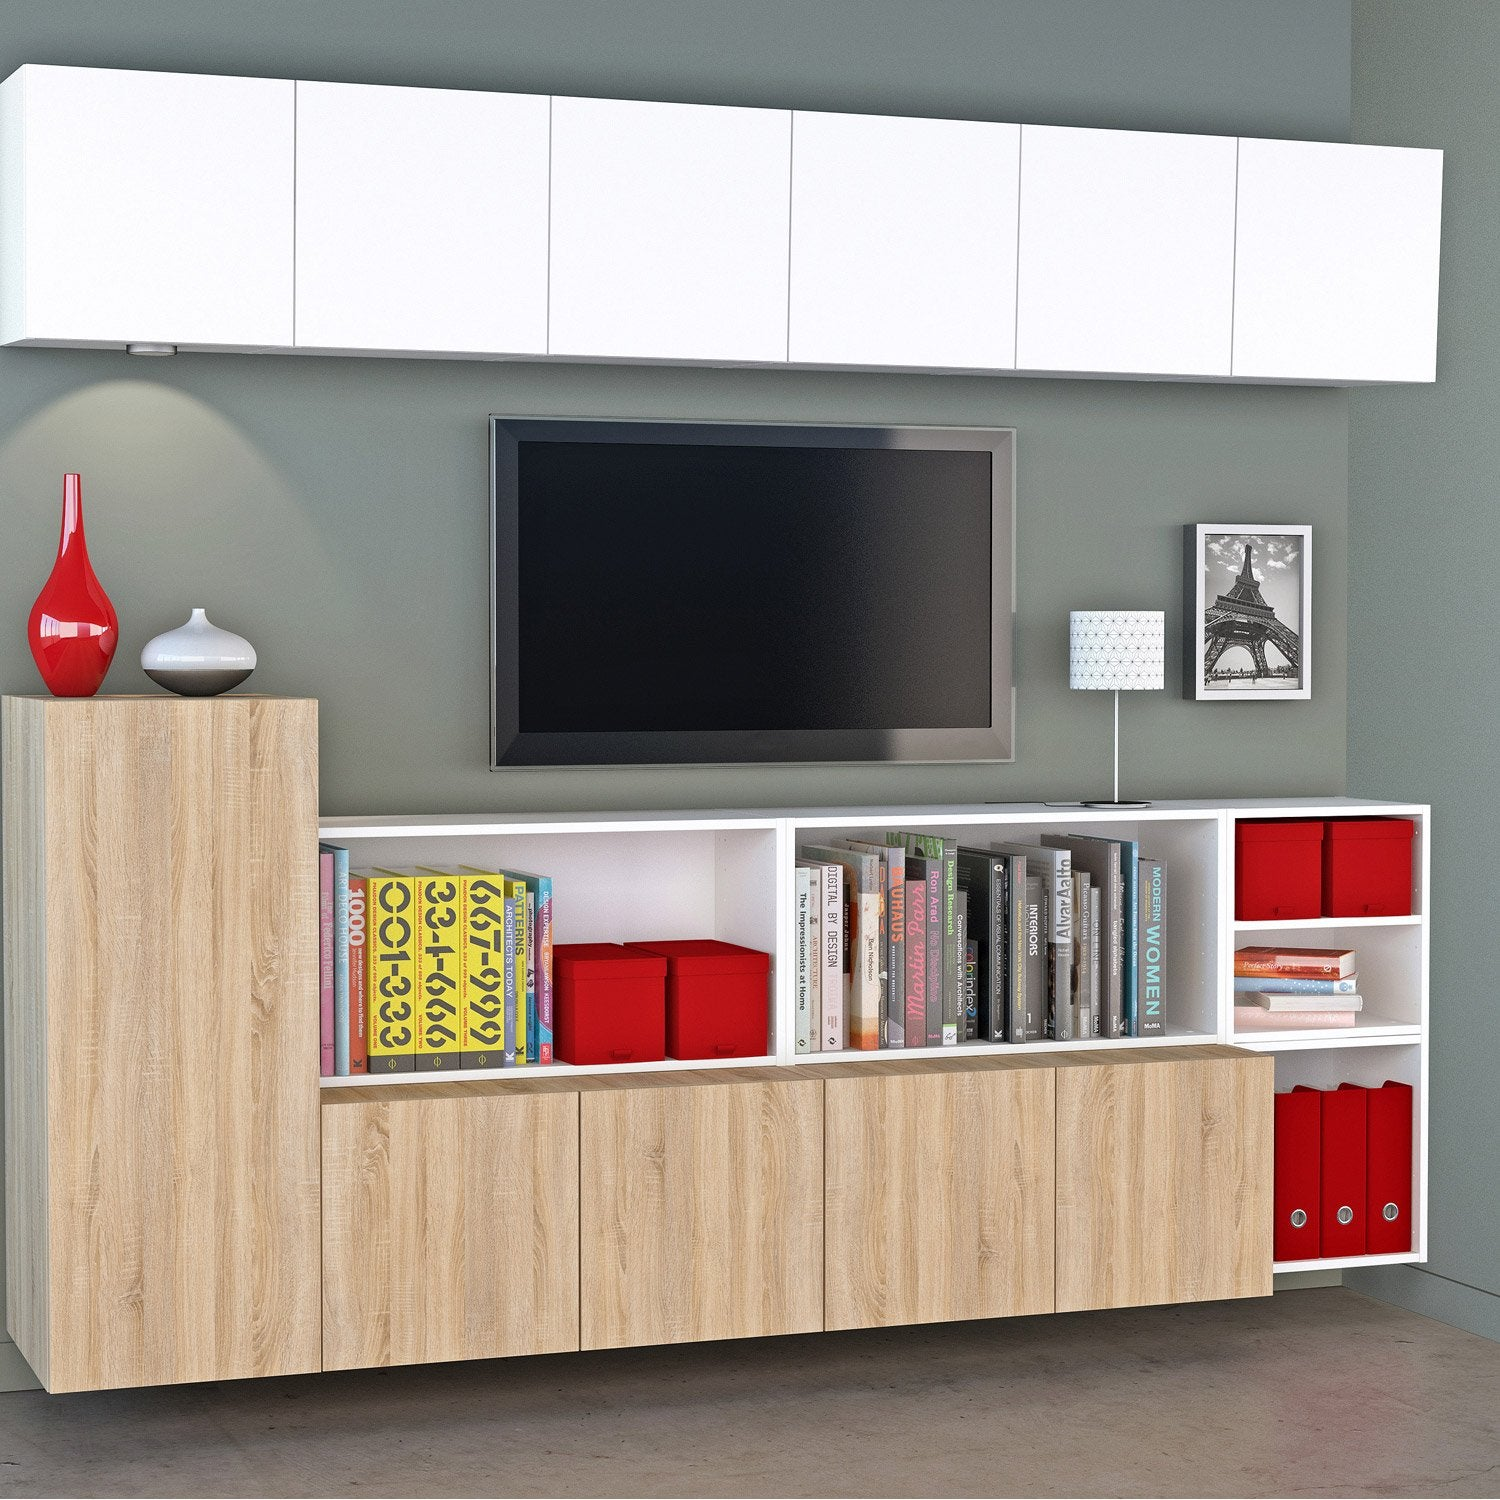 Meuble tv spaceo home effet ch ne leroy merlin - Meuble tv leroy merlin ...